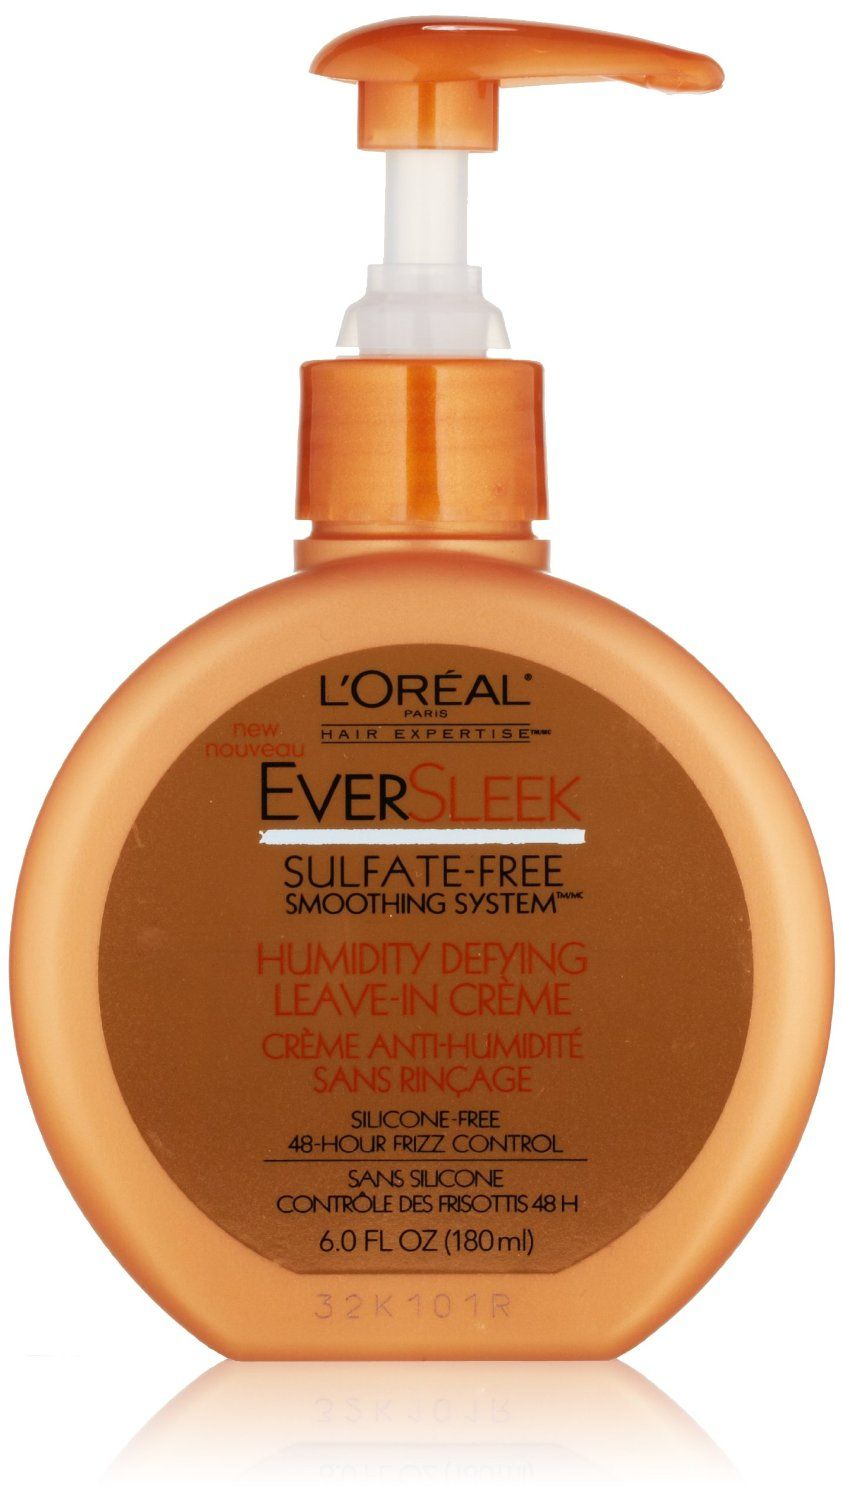 L'Oreal EverSleek Humidity Defying Leave-In Cream